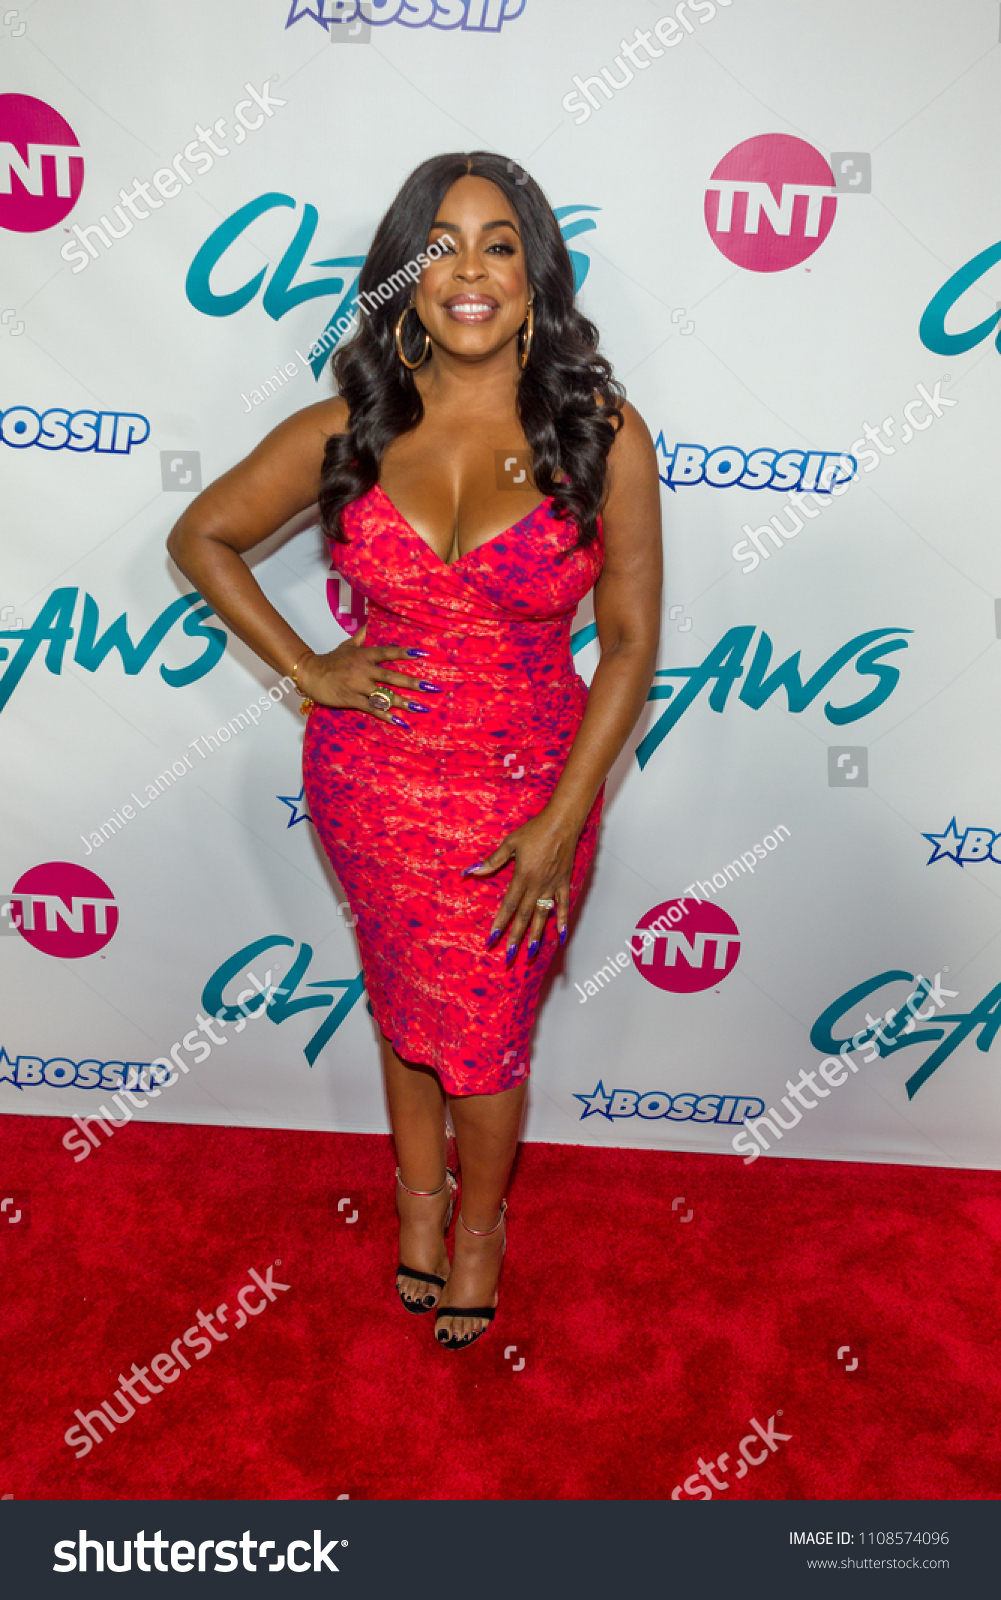 actress niecy nash attending tnt claws stock photo (edit now